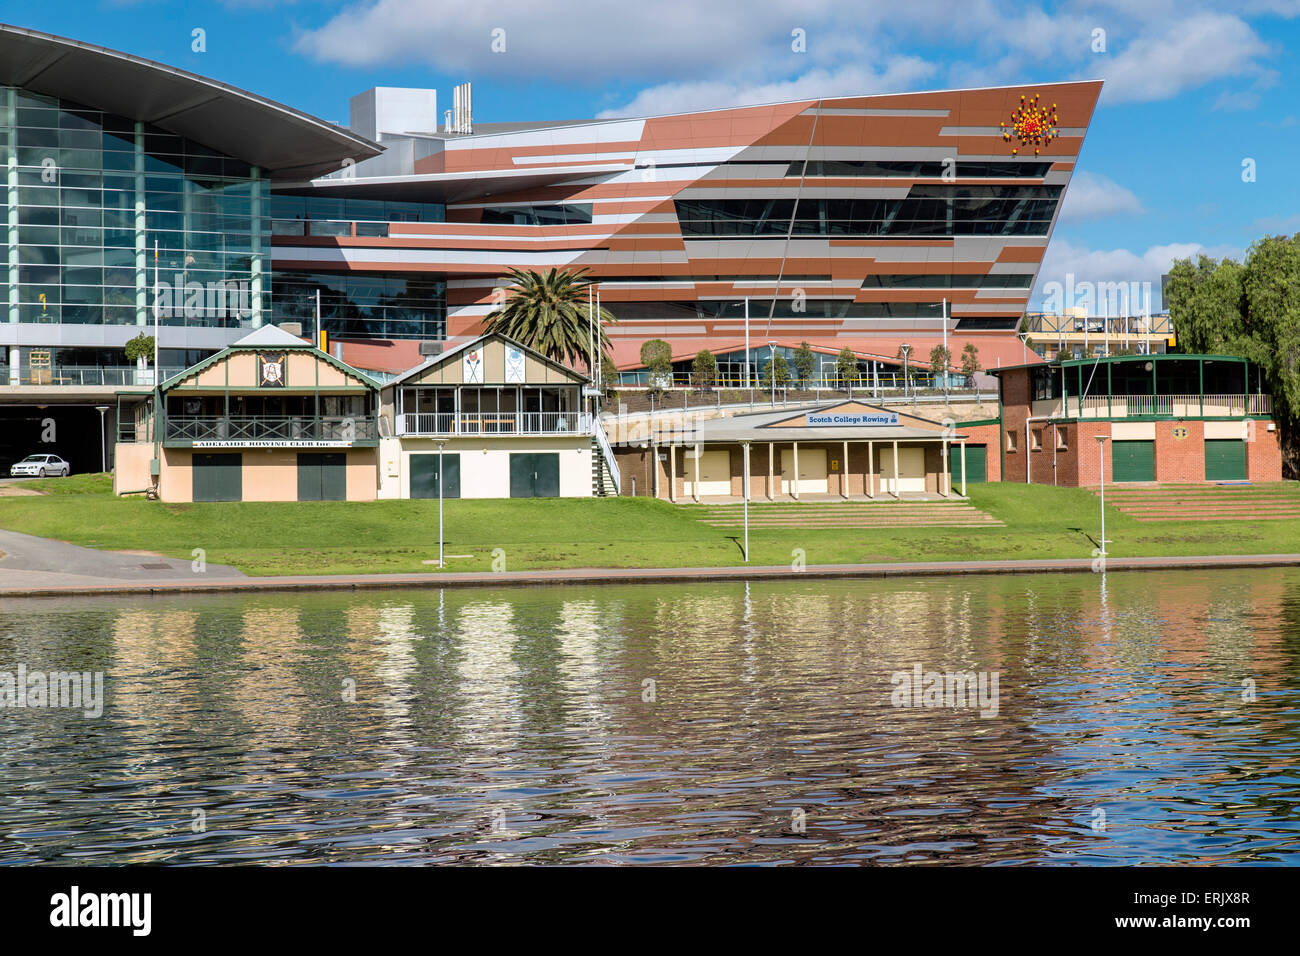 Adelaide Convention Centre and Rowing Club Sheds - Stock Image